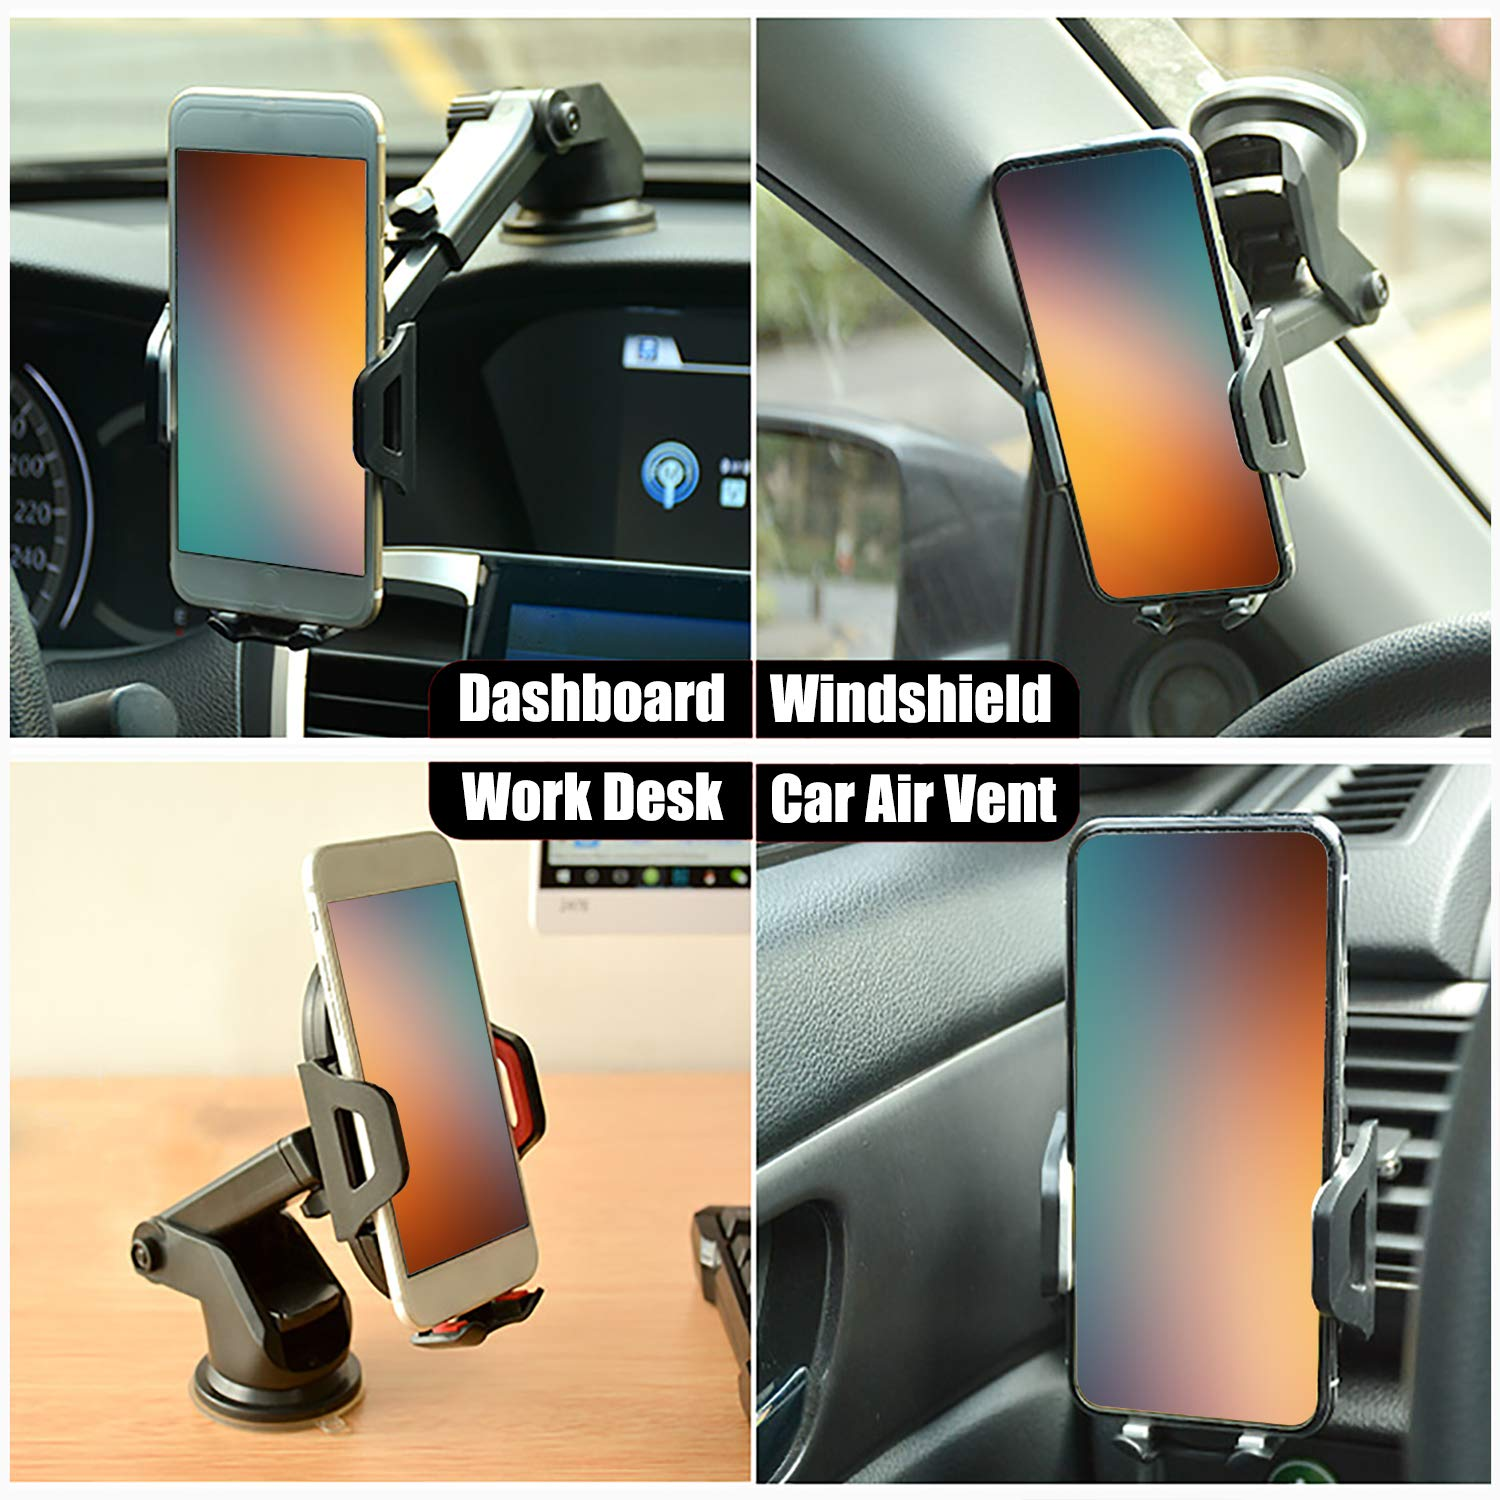 Auto-Clamping Phone Mount Cradle with Suction Cup on Dashboard Air Vent Windshield Compatible for iPhone,Samsung and More Smartphone from 4.0 in to 7.0 in Gray Nictrue Car Phone Holder for Car